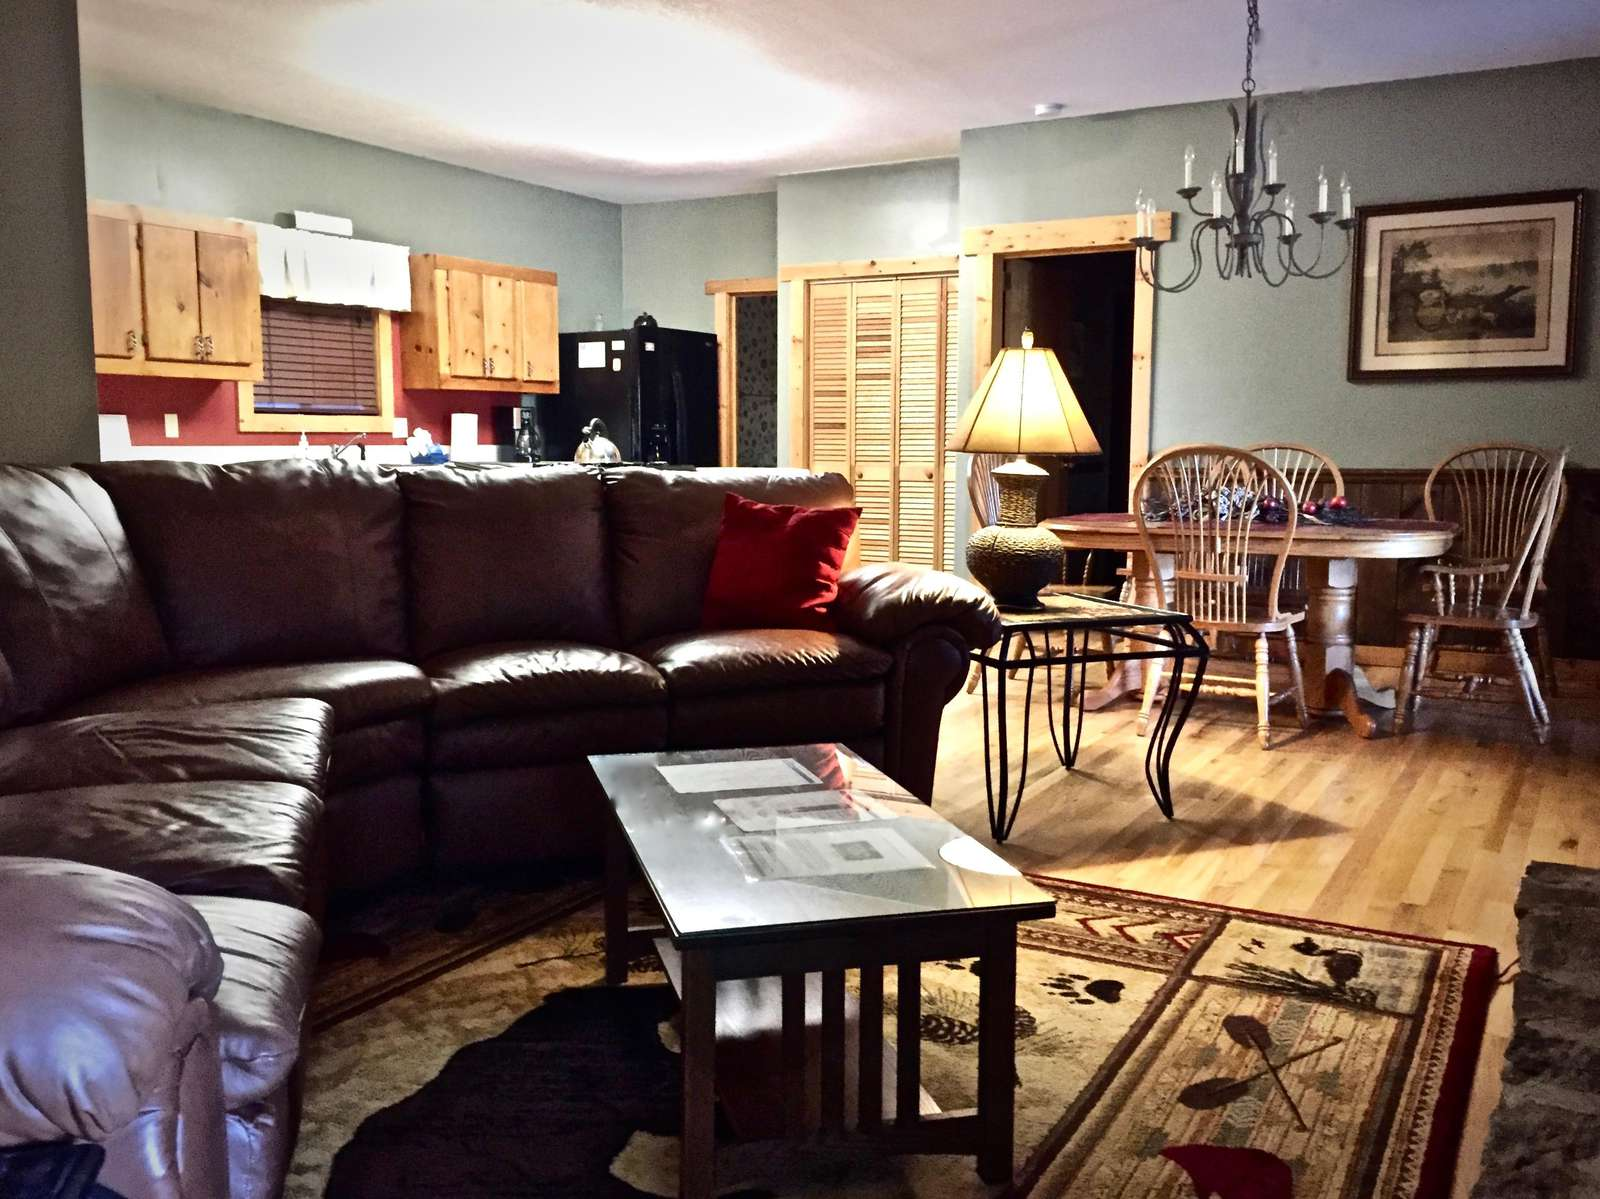 Upgraded in Sept. 2019, and Living Room Furniture Comfortably seats up to 6 Guests